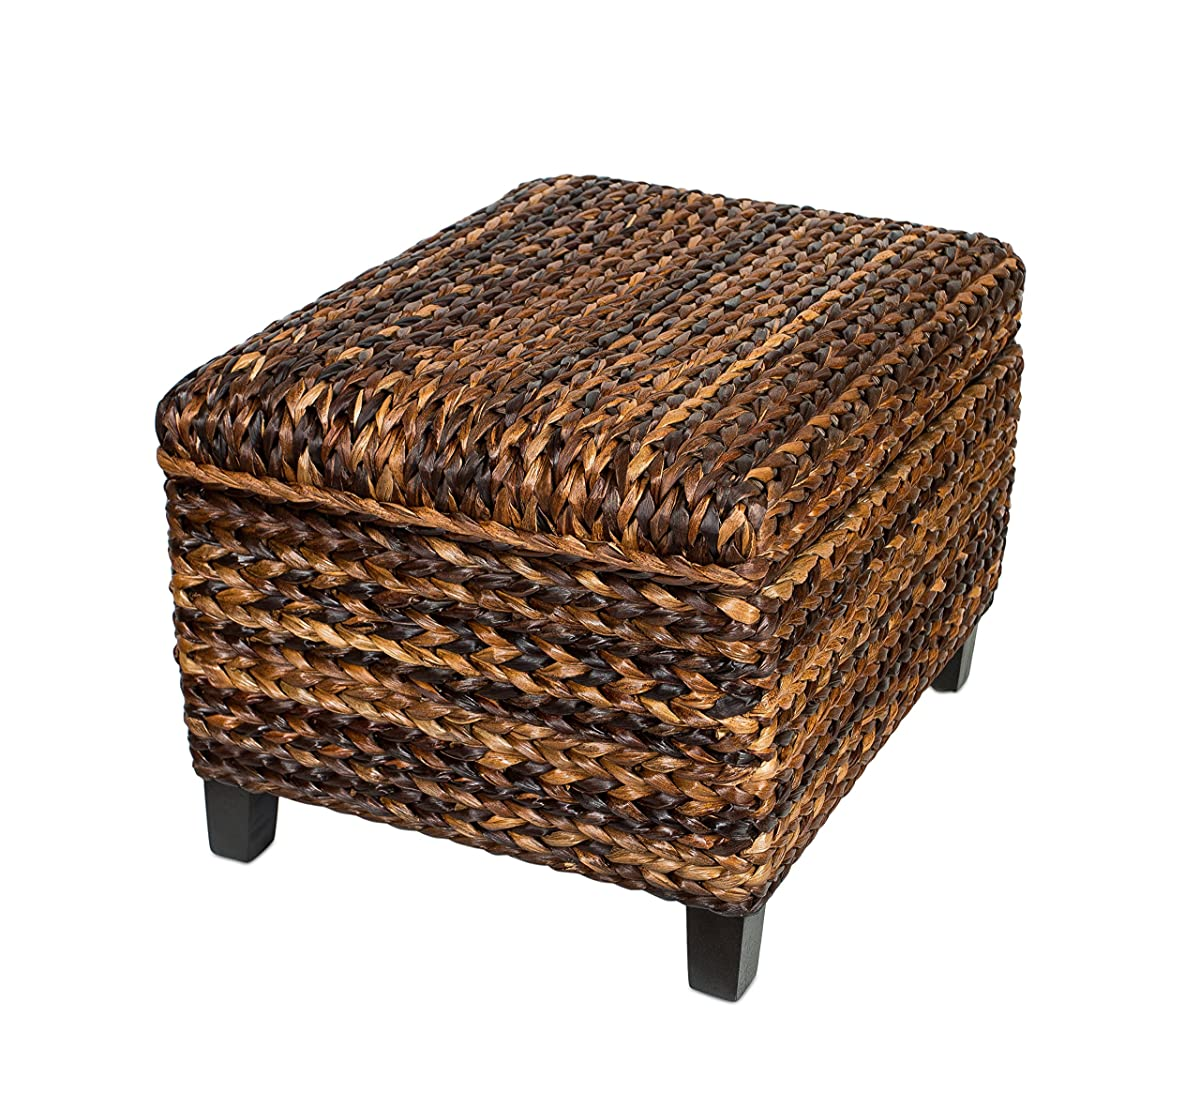 BirdRock Home Woven Seagrass Storage Ottoman | With Safety Hinges